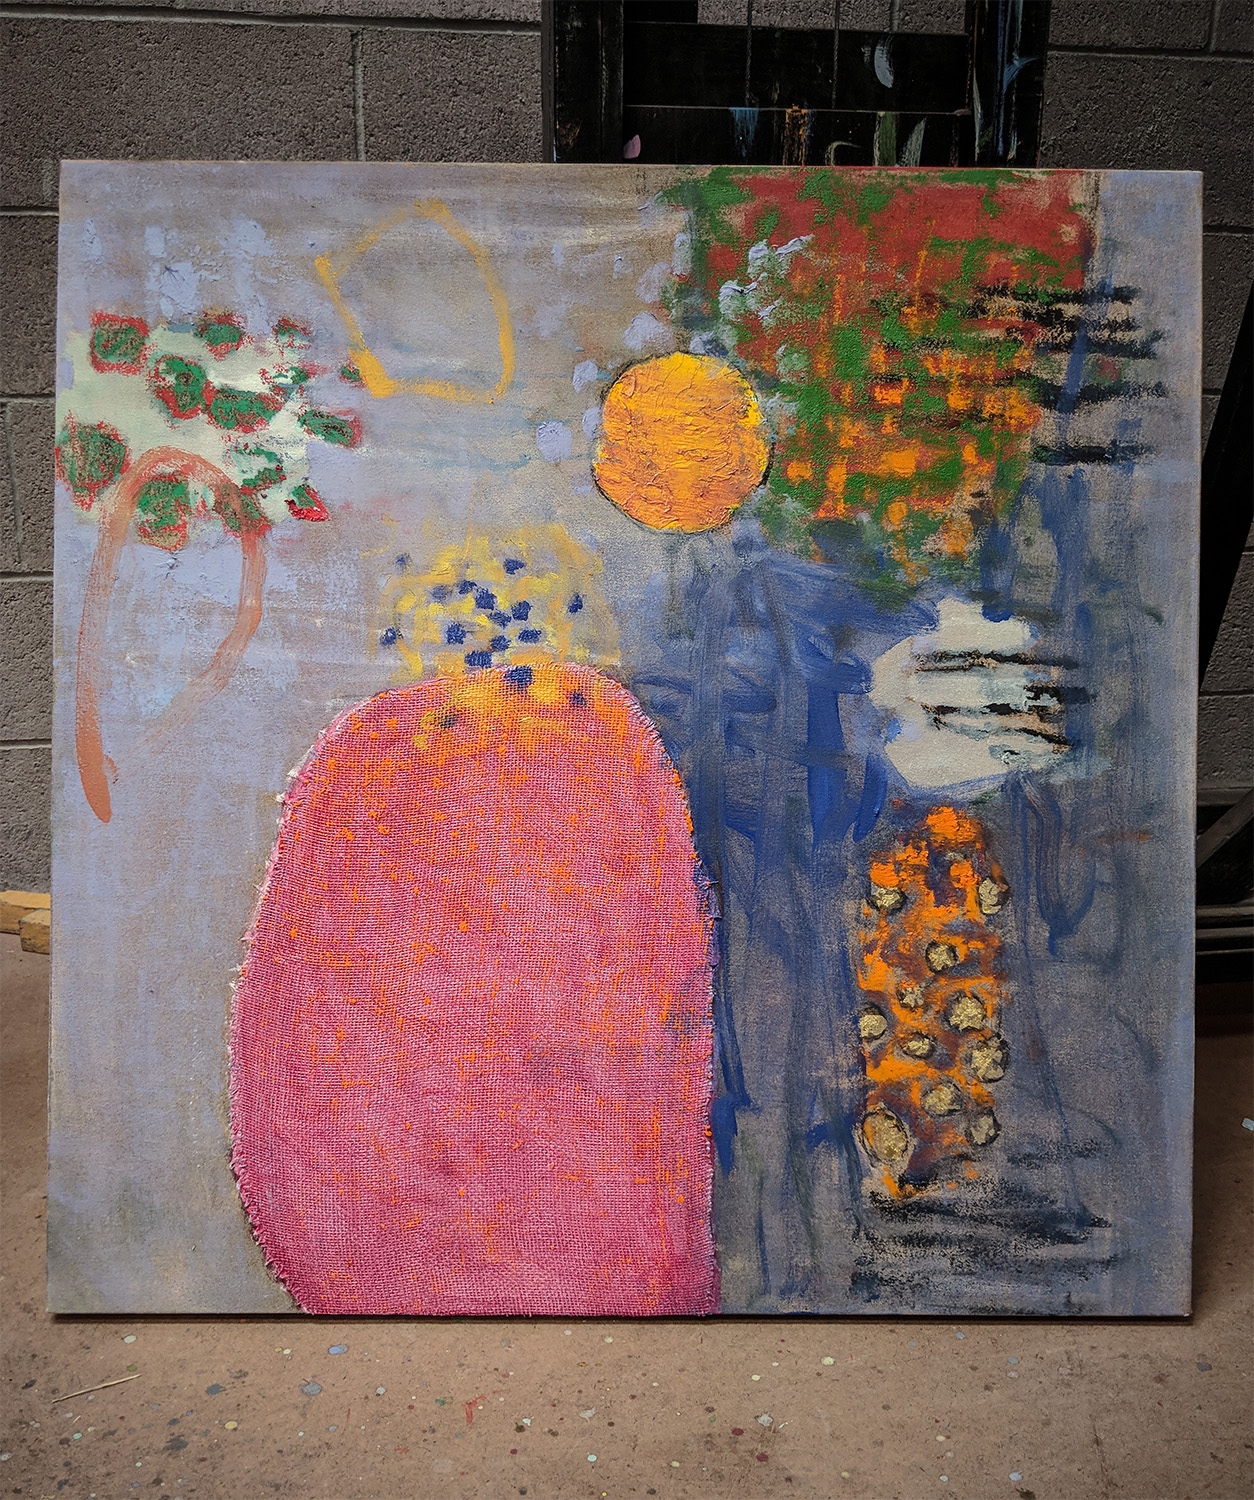 early stages of oil on canvas painting in Santa Fe studio